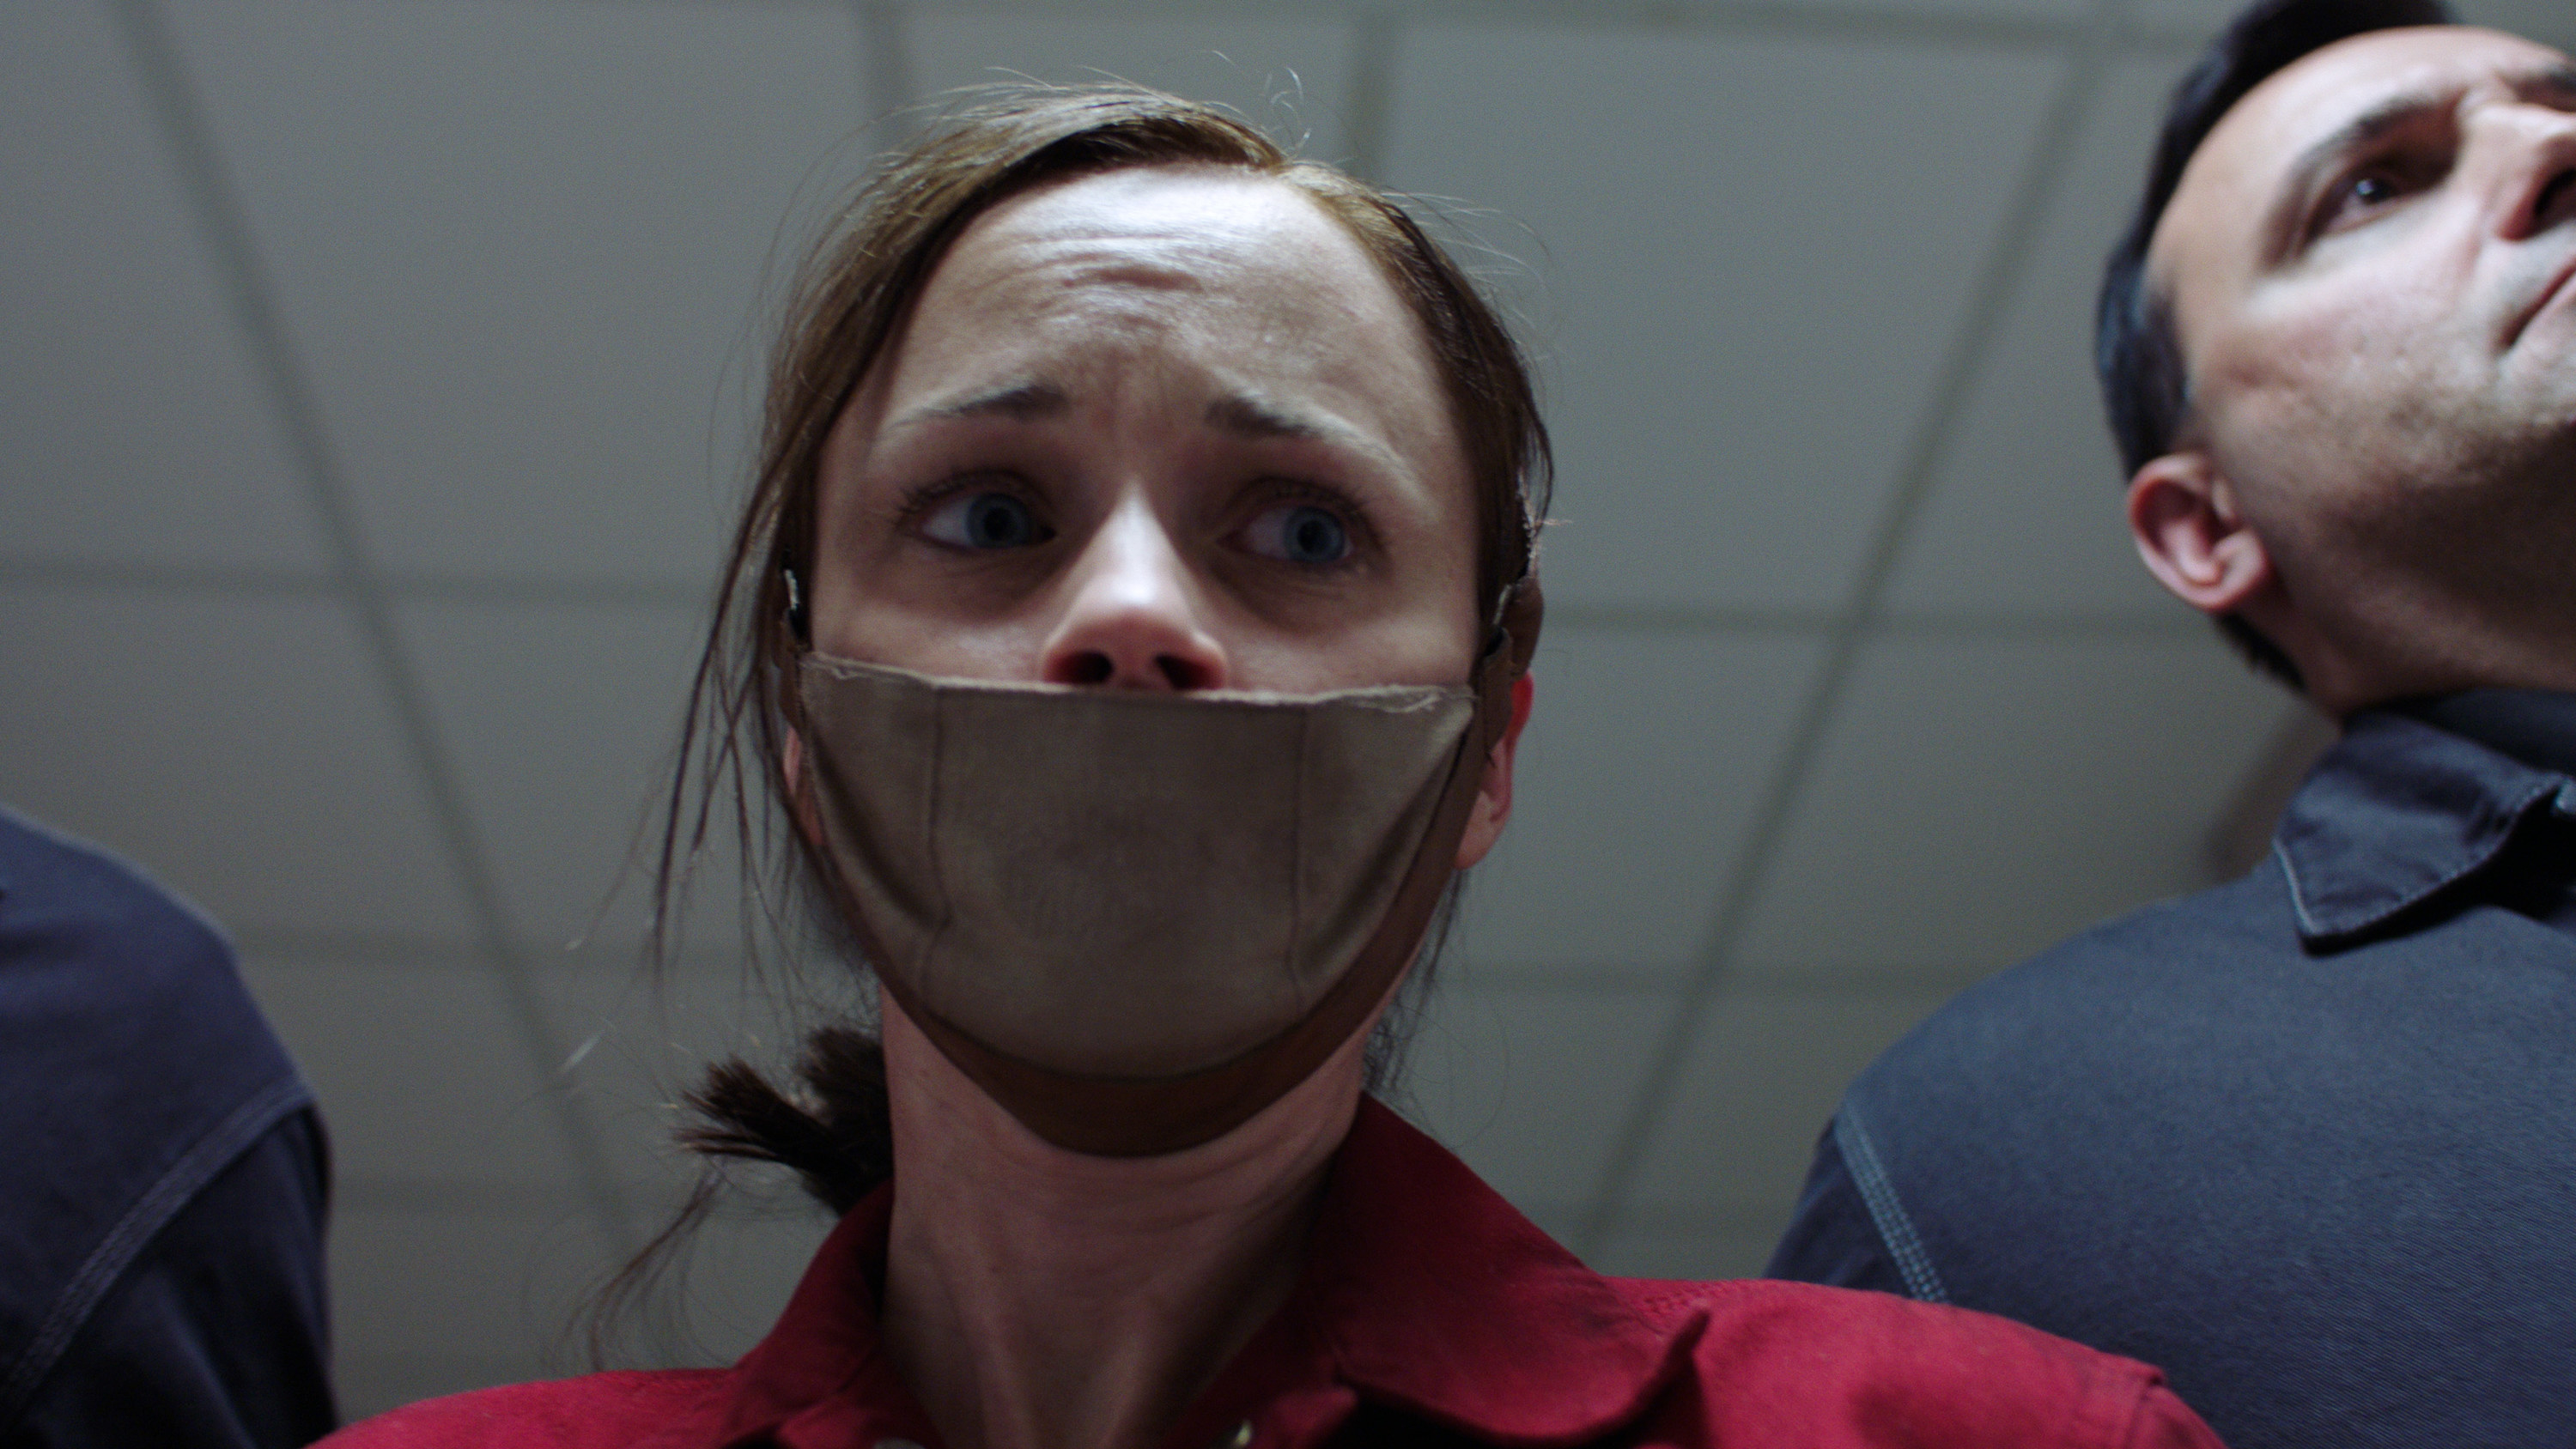 Alexis Bledel being led down a hallway by guards with a mask over her mouth